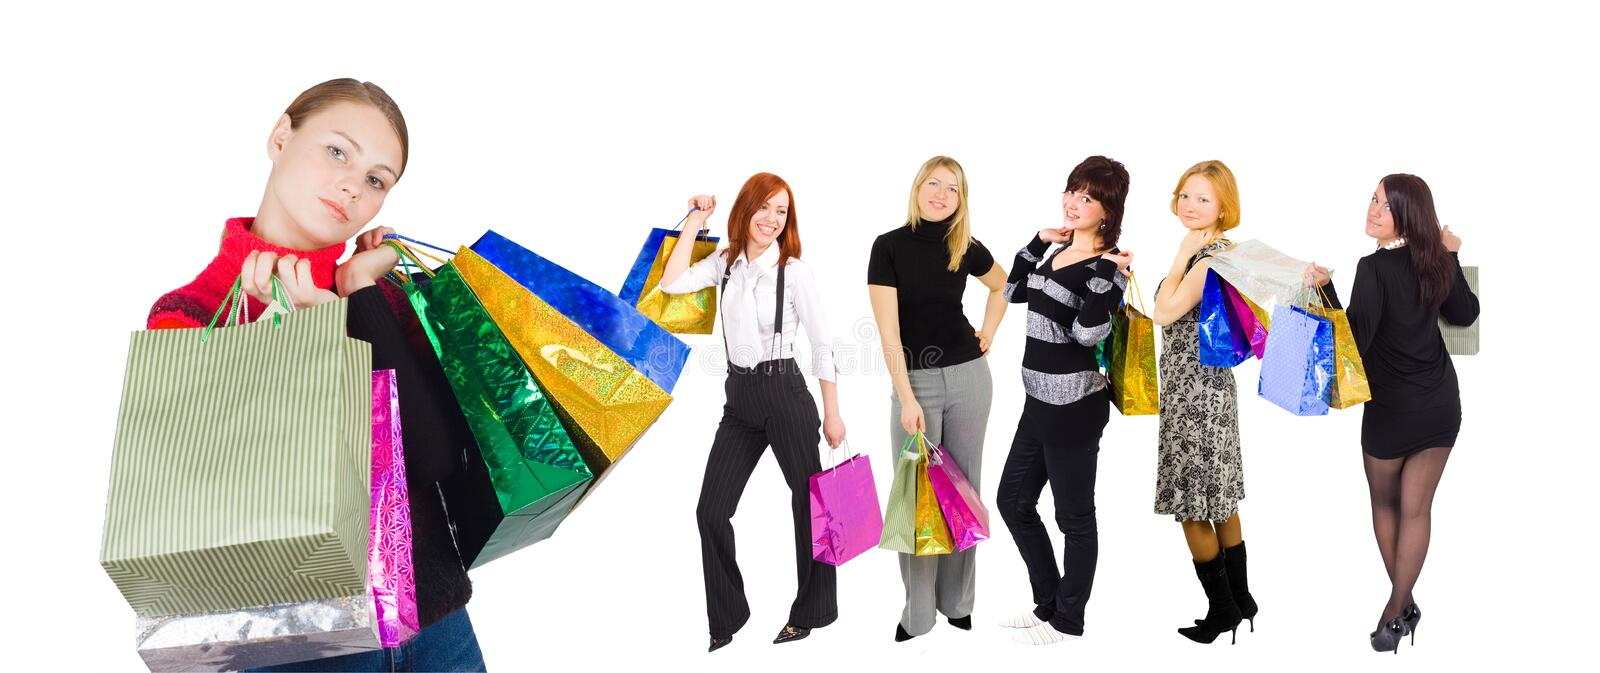 Download Group Of Six Shopping Girls Stock Photo - Image of market, attractive: 4524150